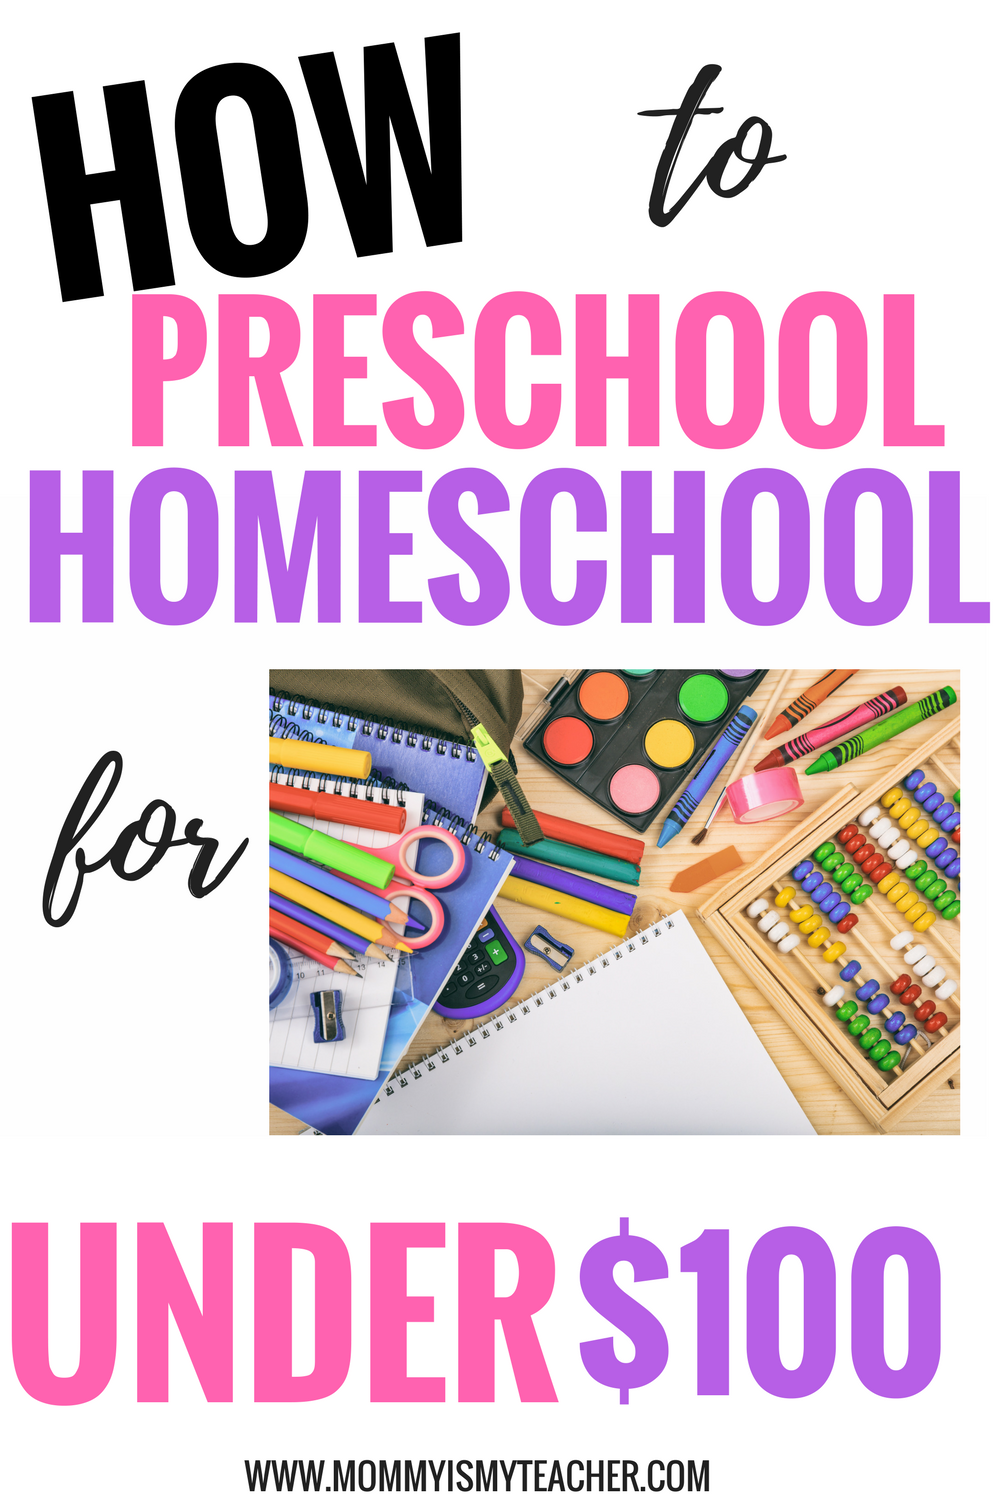 wow, I love this preschool homeschool curriculum on a budget! This is great for preschool activities at home.